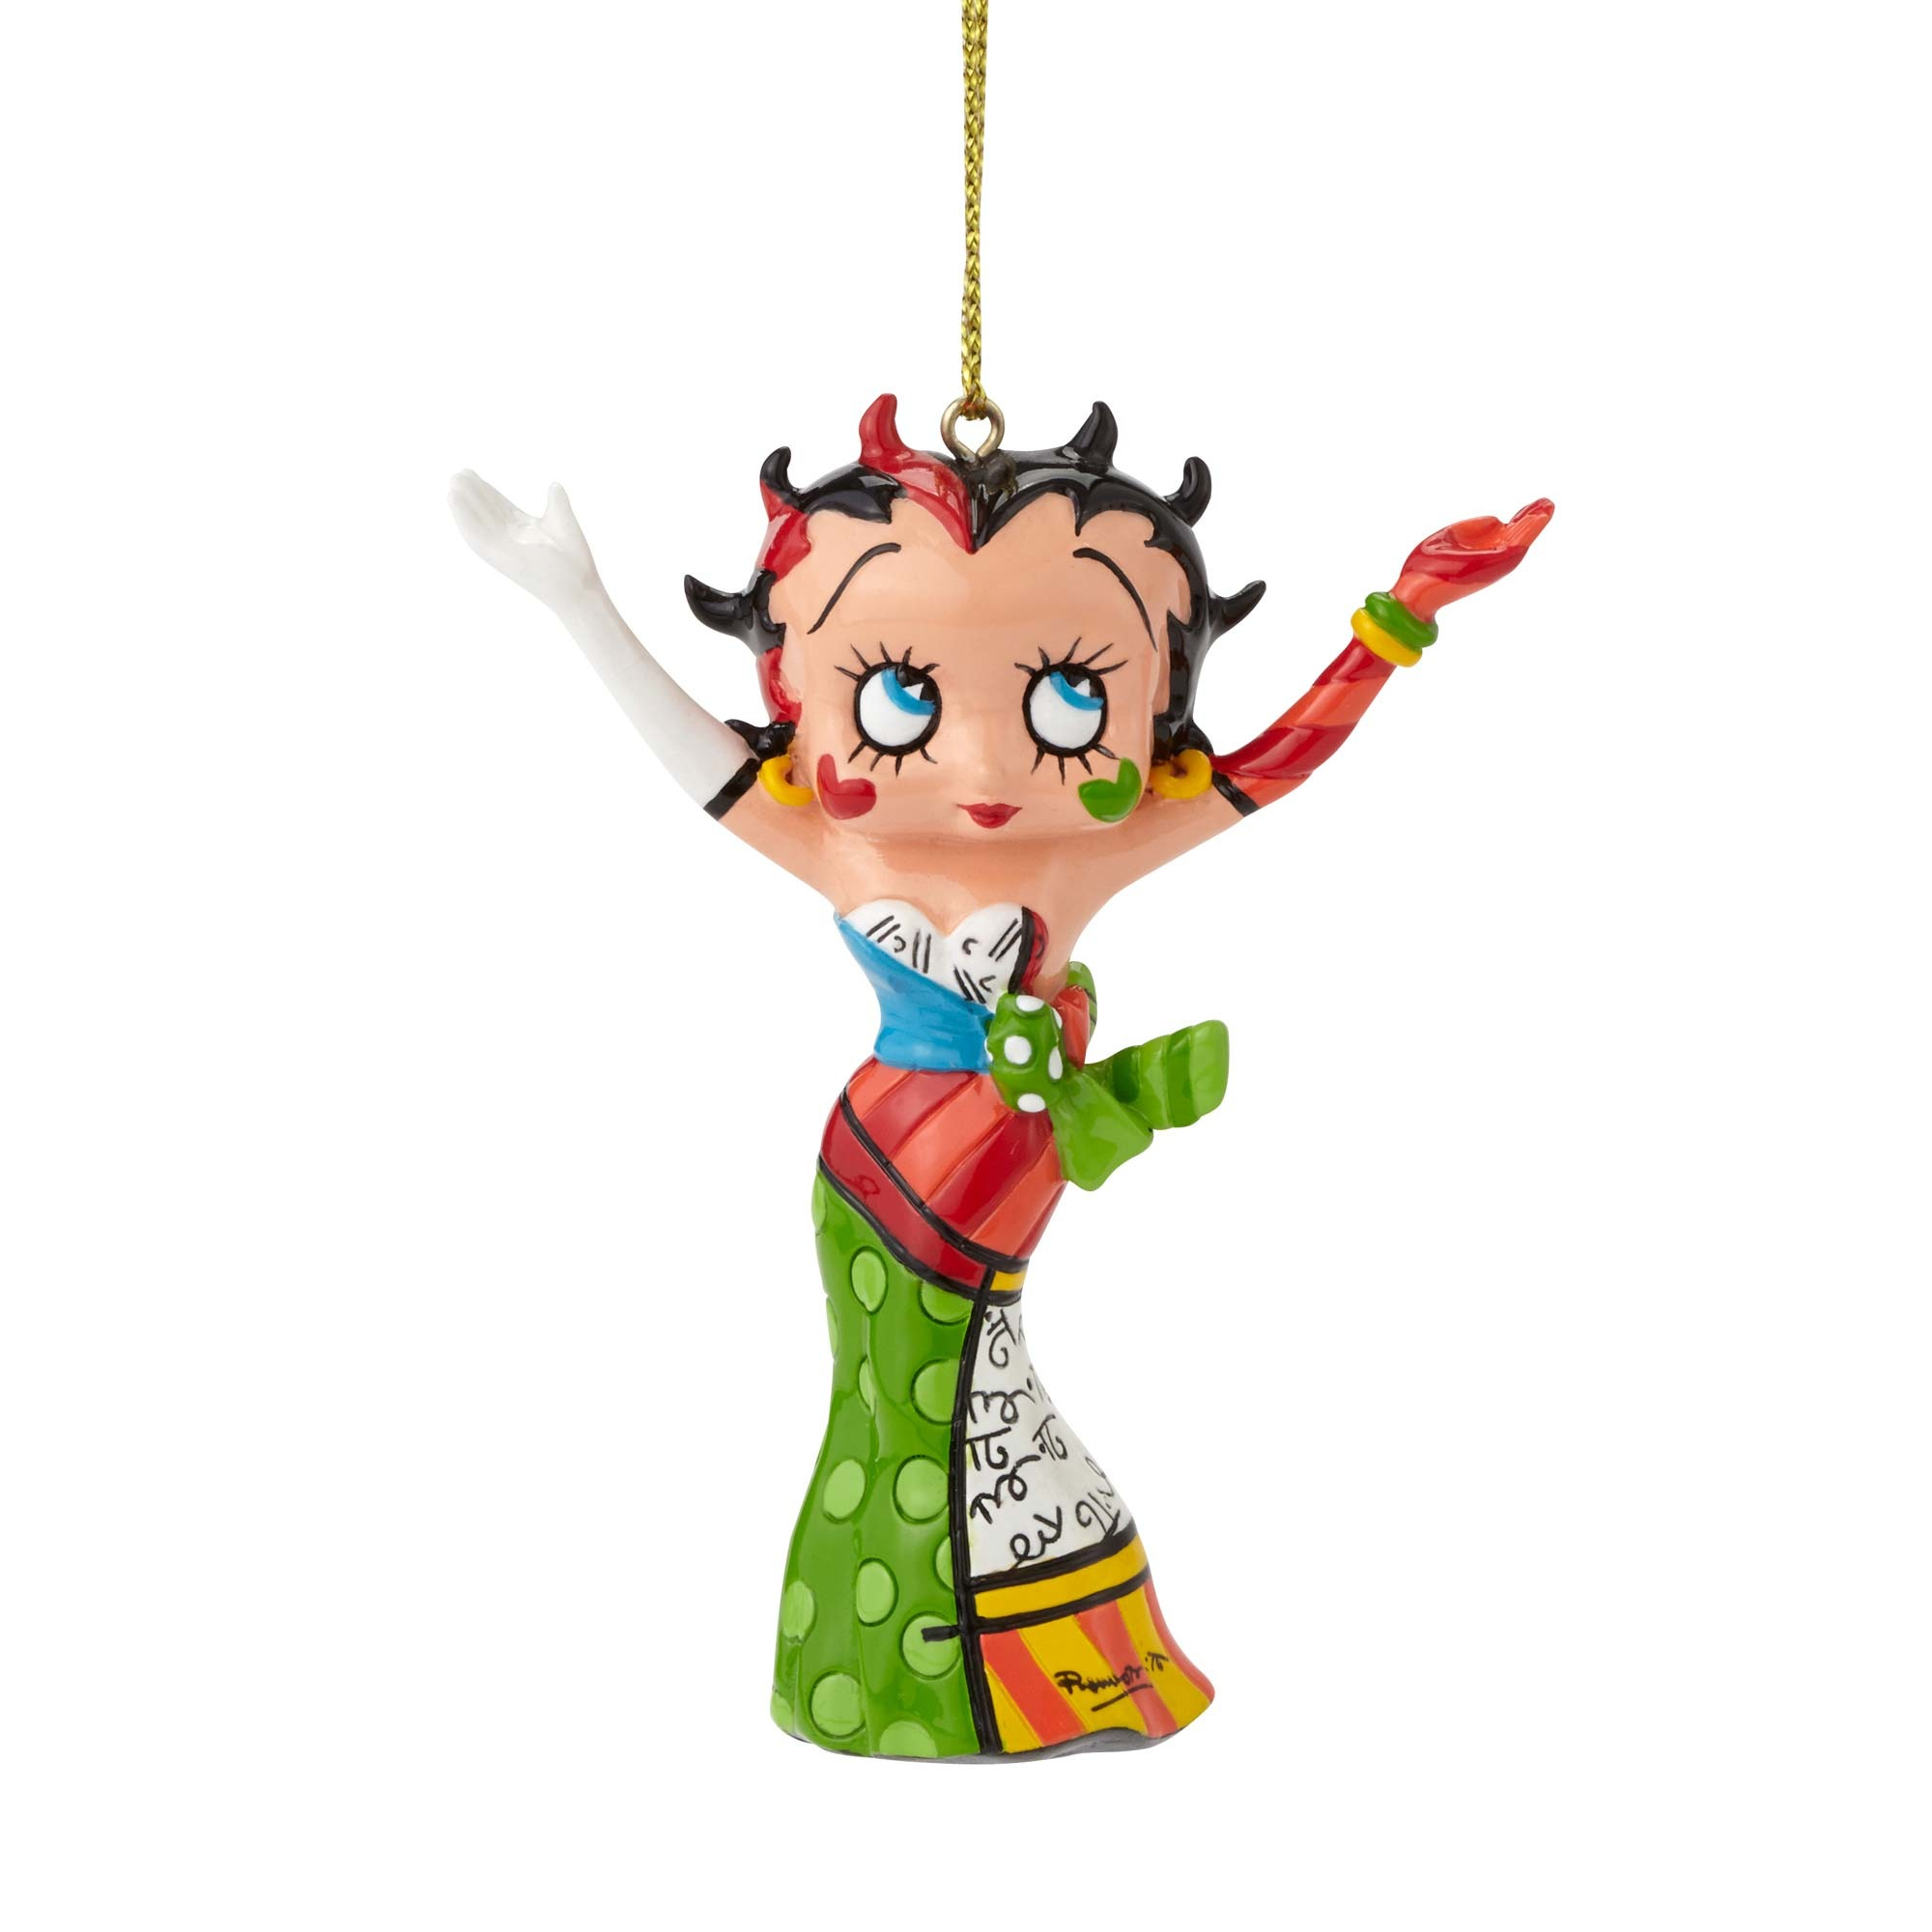 Betty Boop Strikes A Pose Ornament